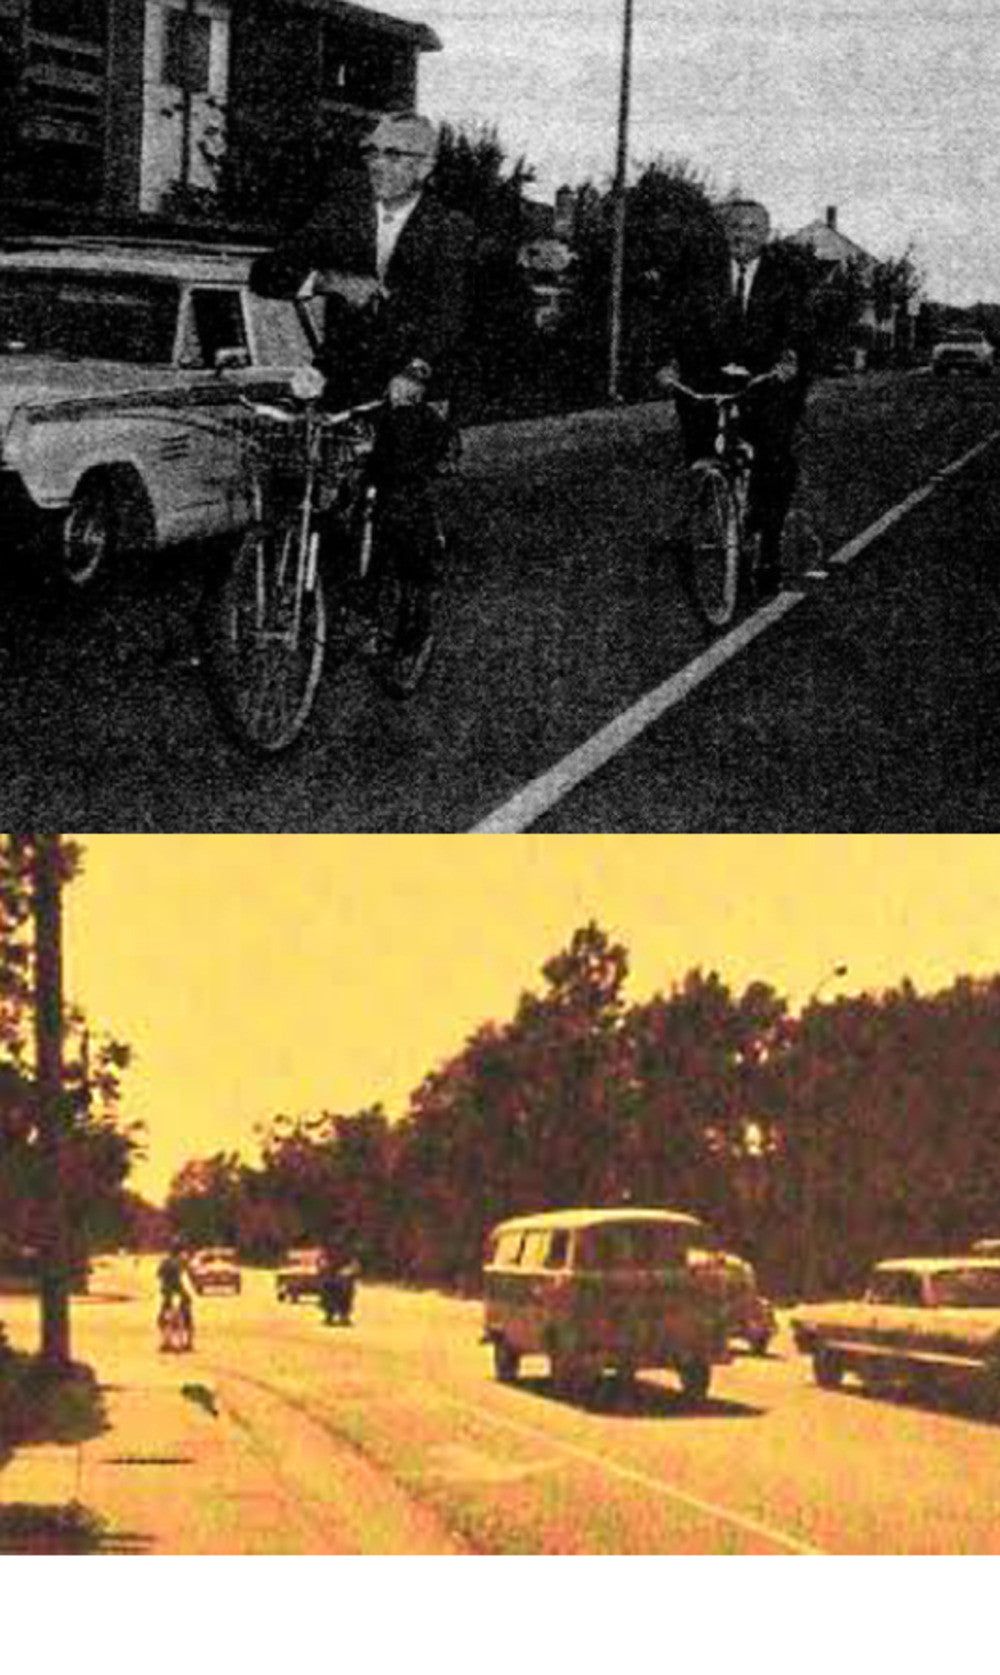 the first bike lanes. 3